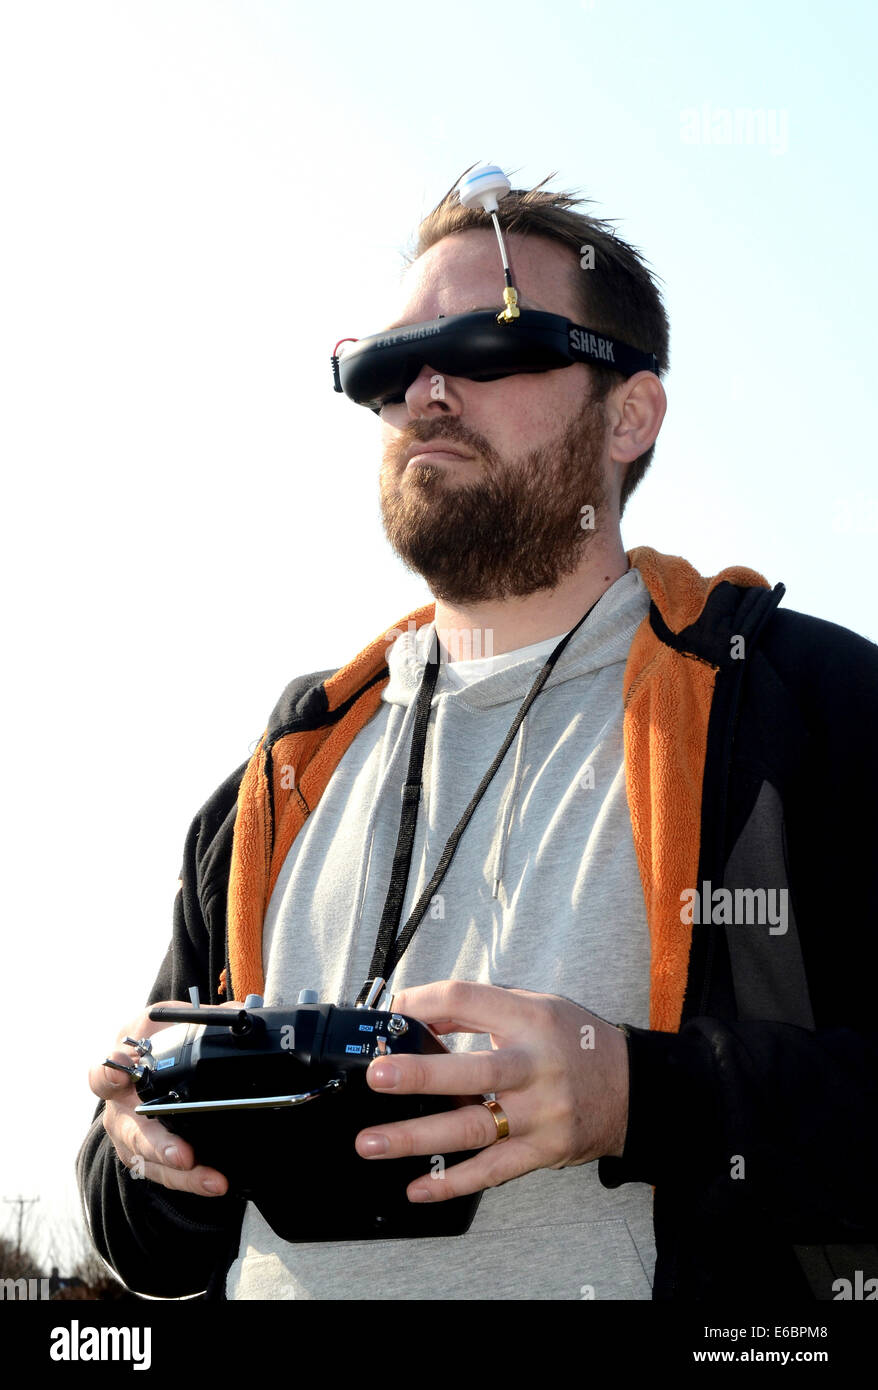 Man with FPV goggles and FUTUBA operator console to control a drone - Stock Image